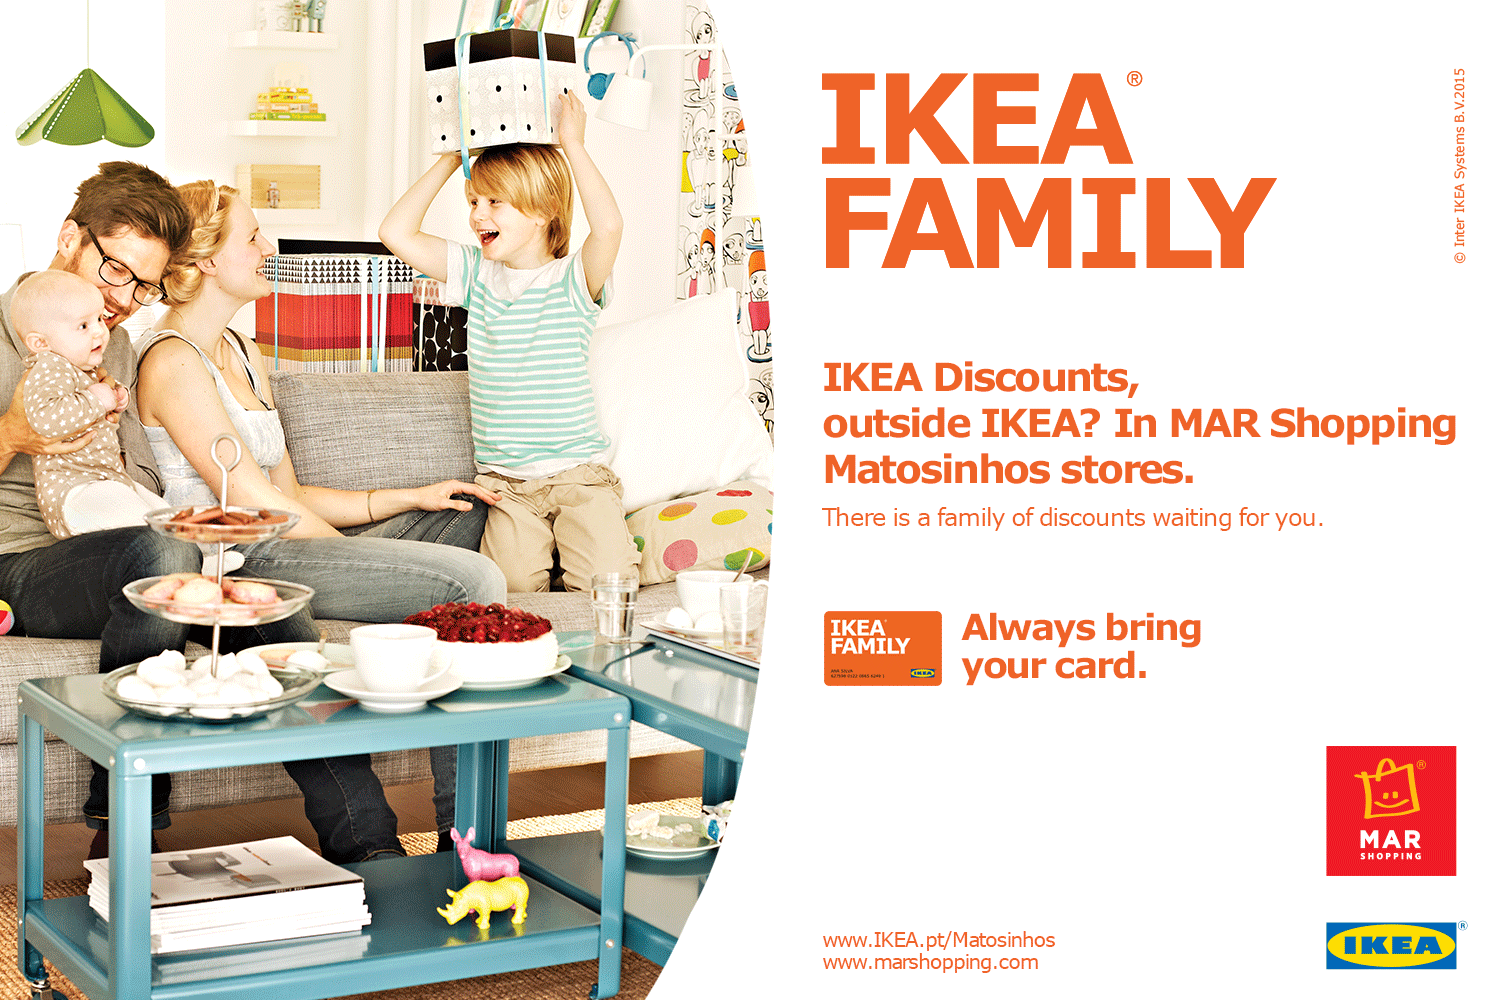 ikea family offers mar shopping matosinhos ikea family